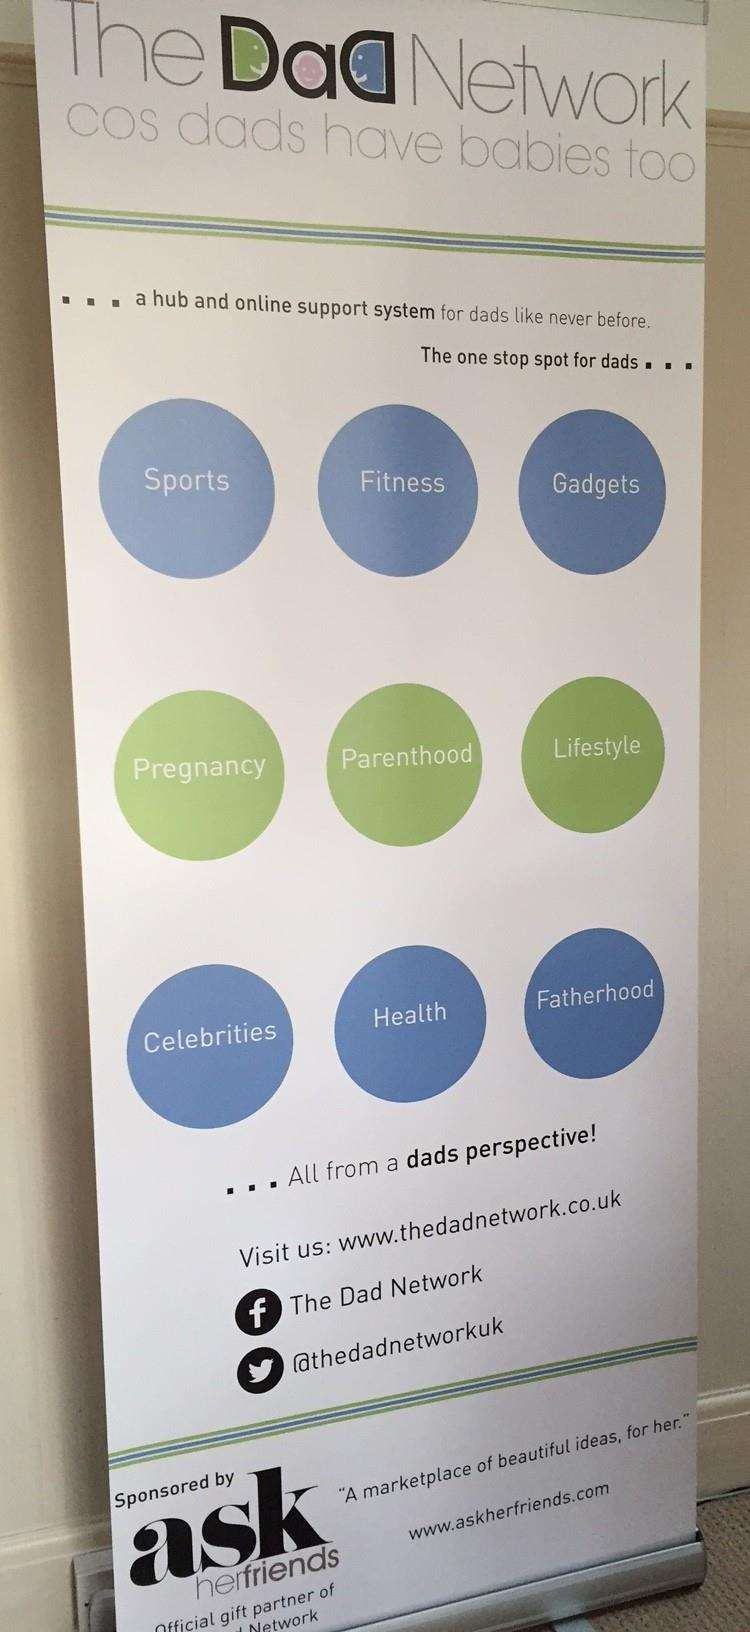 We're getting ready for The Baby Show! - Quality, Cheap Roller Banners, IMG 3757 e1424285720667%, uncategorised%